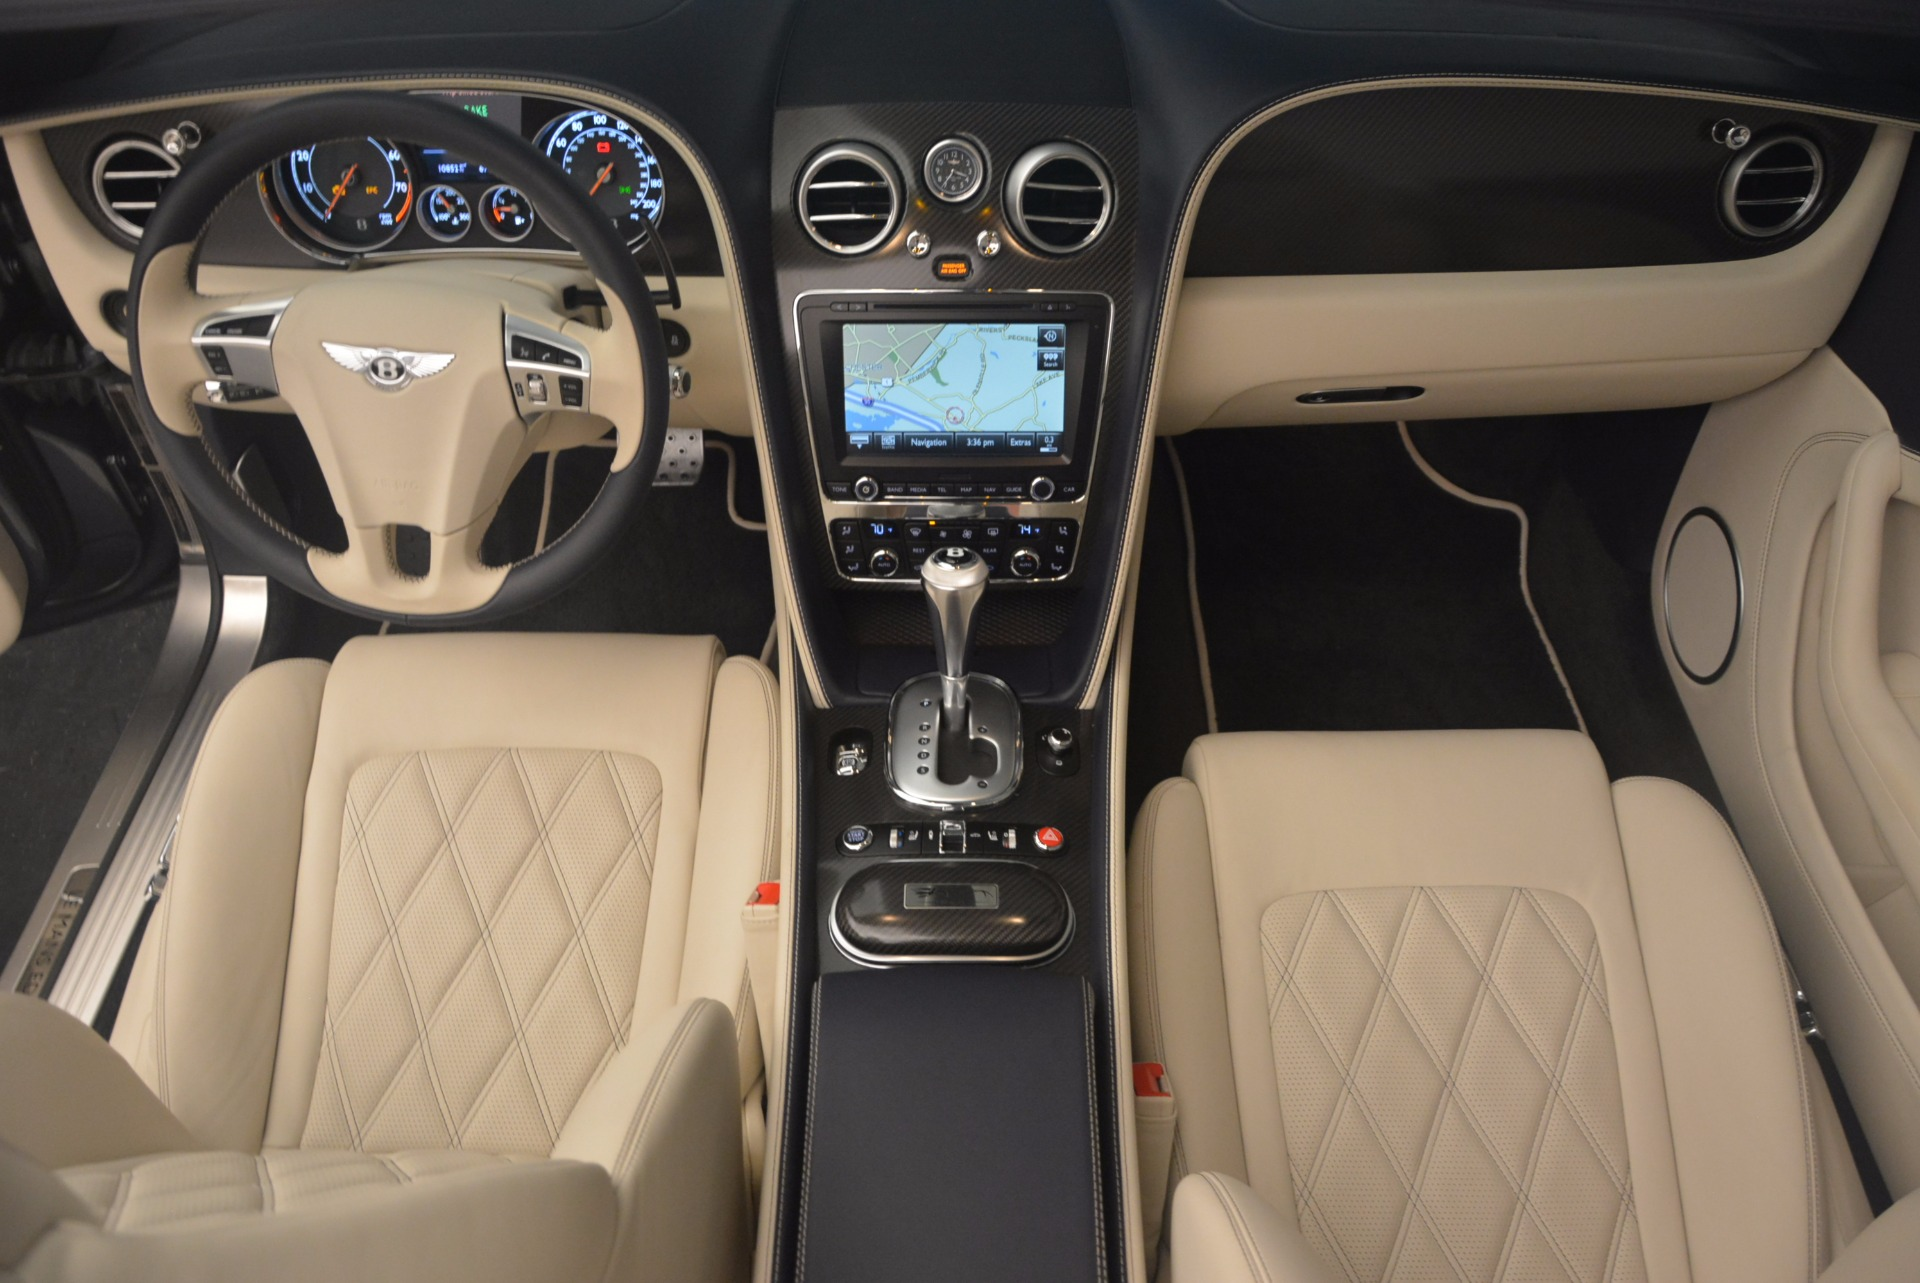 Used 2013 Bentley Continental GT V8 Le Mans Edition, 1 of 48 For Sale In Westport, CT 1288_p37